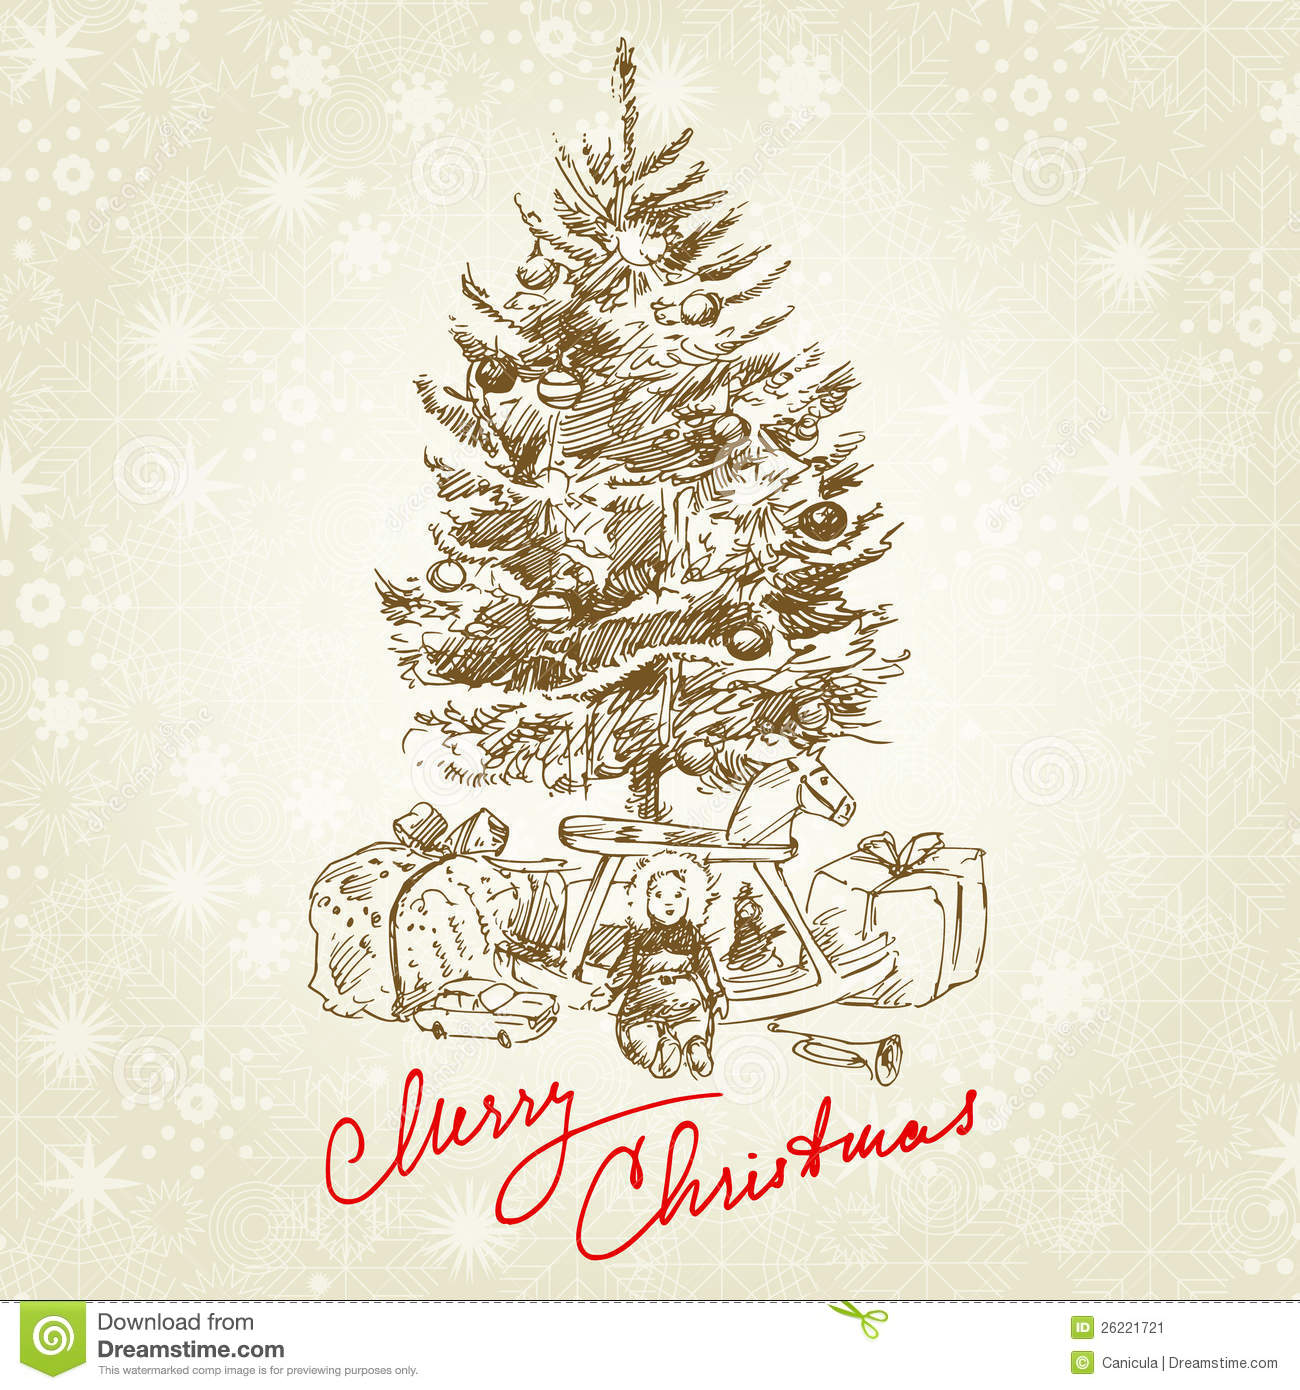 Vintage Christmas Tree Stock Image - Image: 26221721